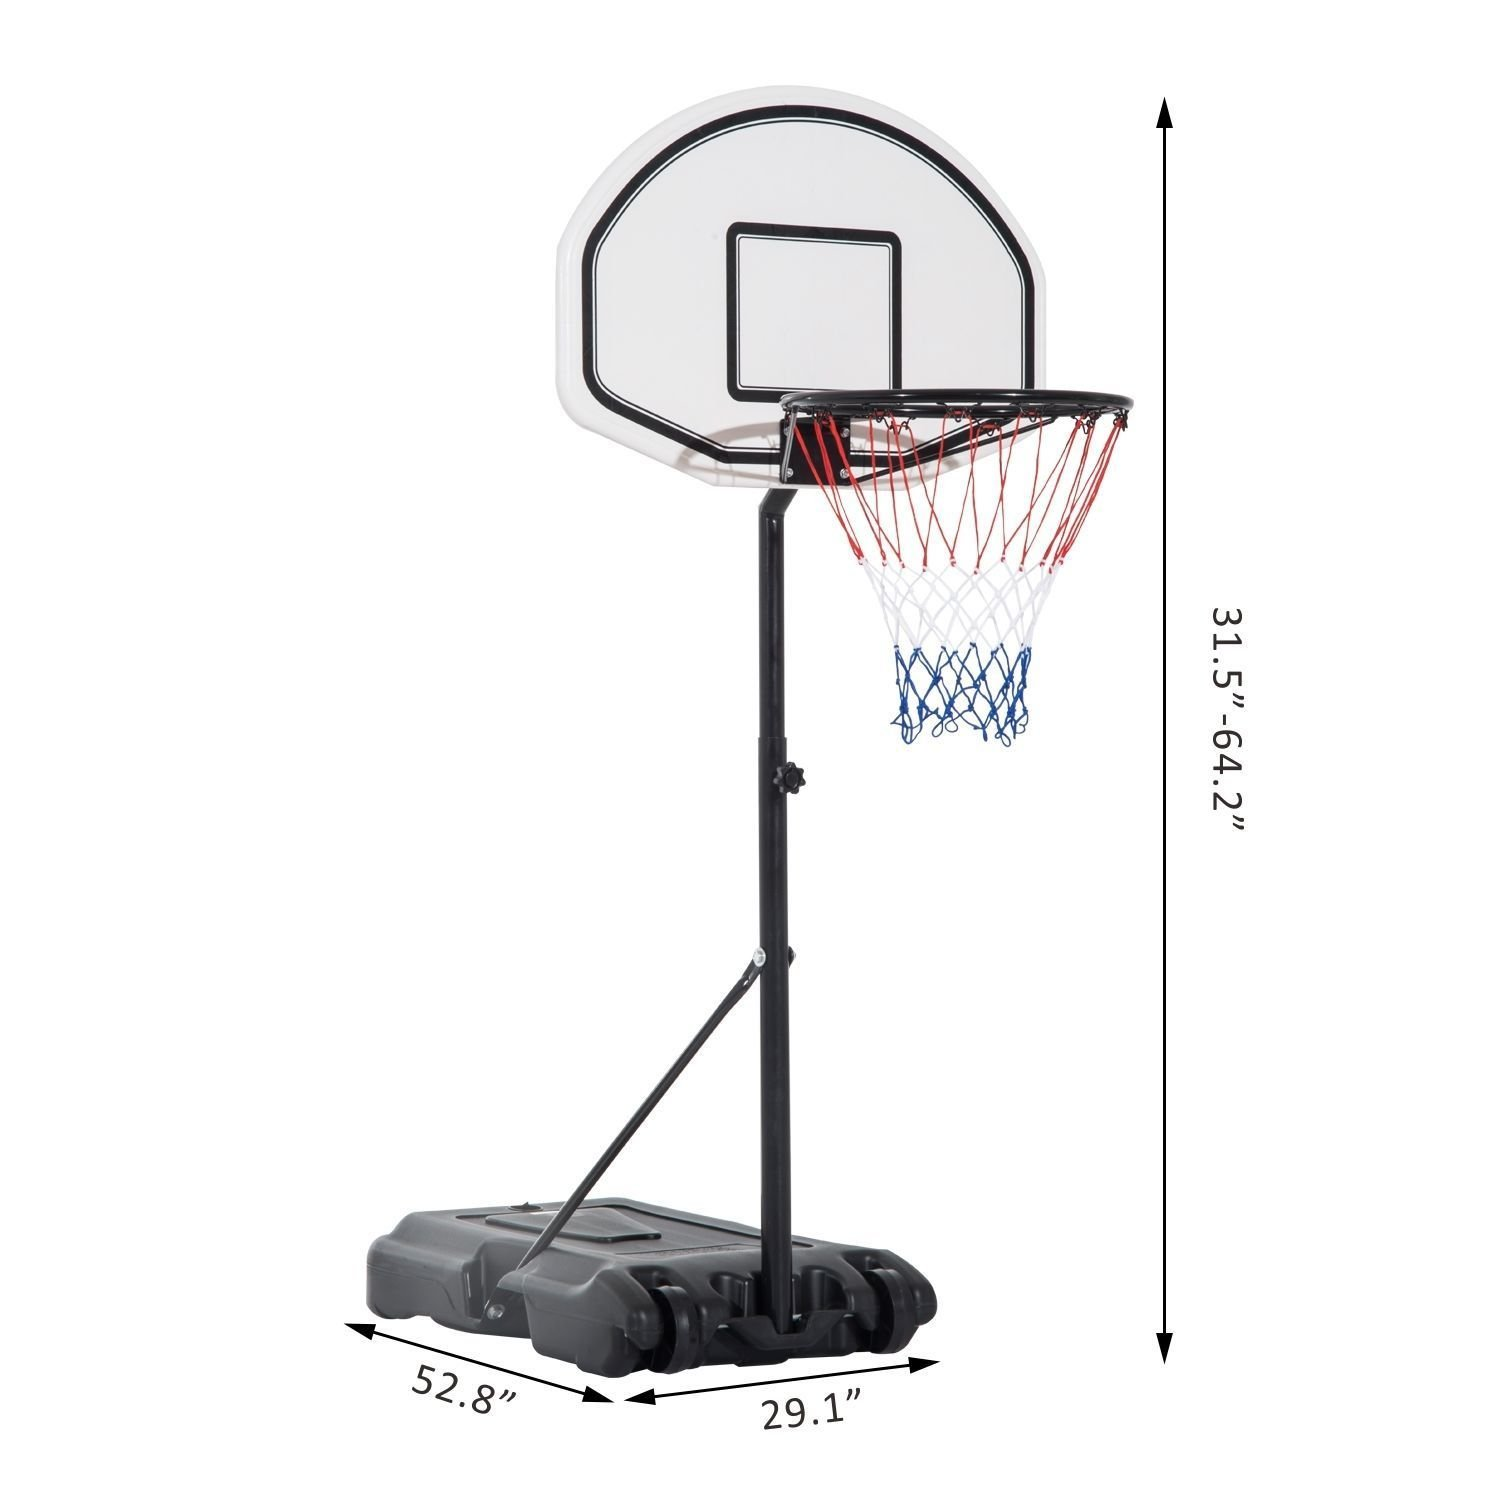 Poolside Basketball Hoop System Pool Water Sport Game Play Outdoor Adjustable by SpiritOne (Image #3)